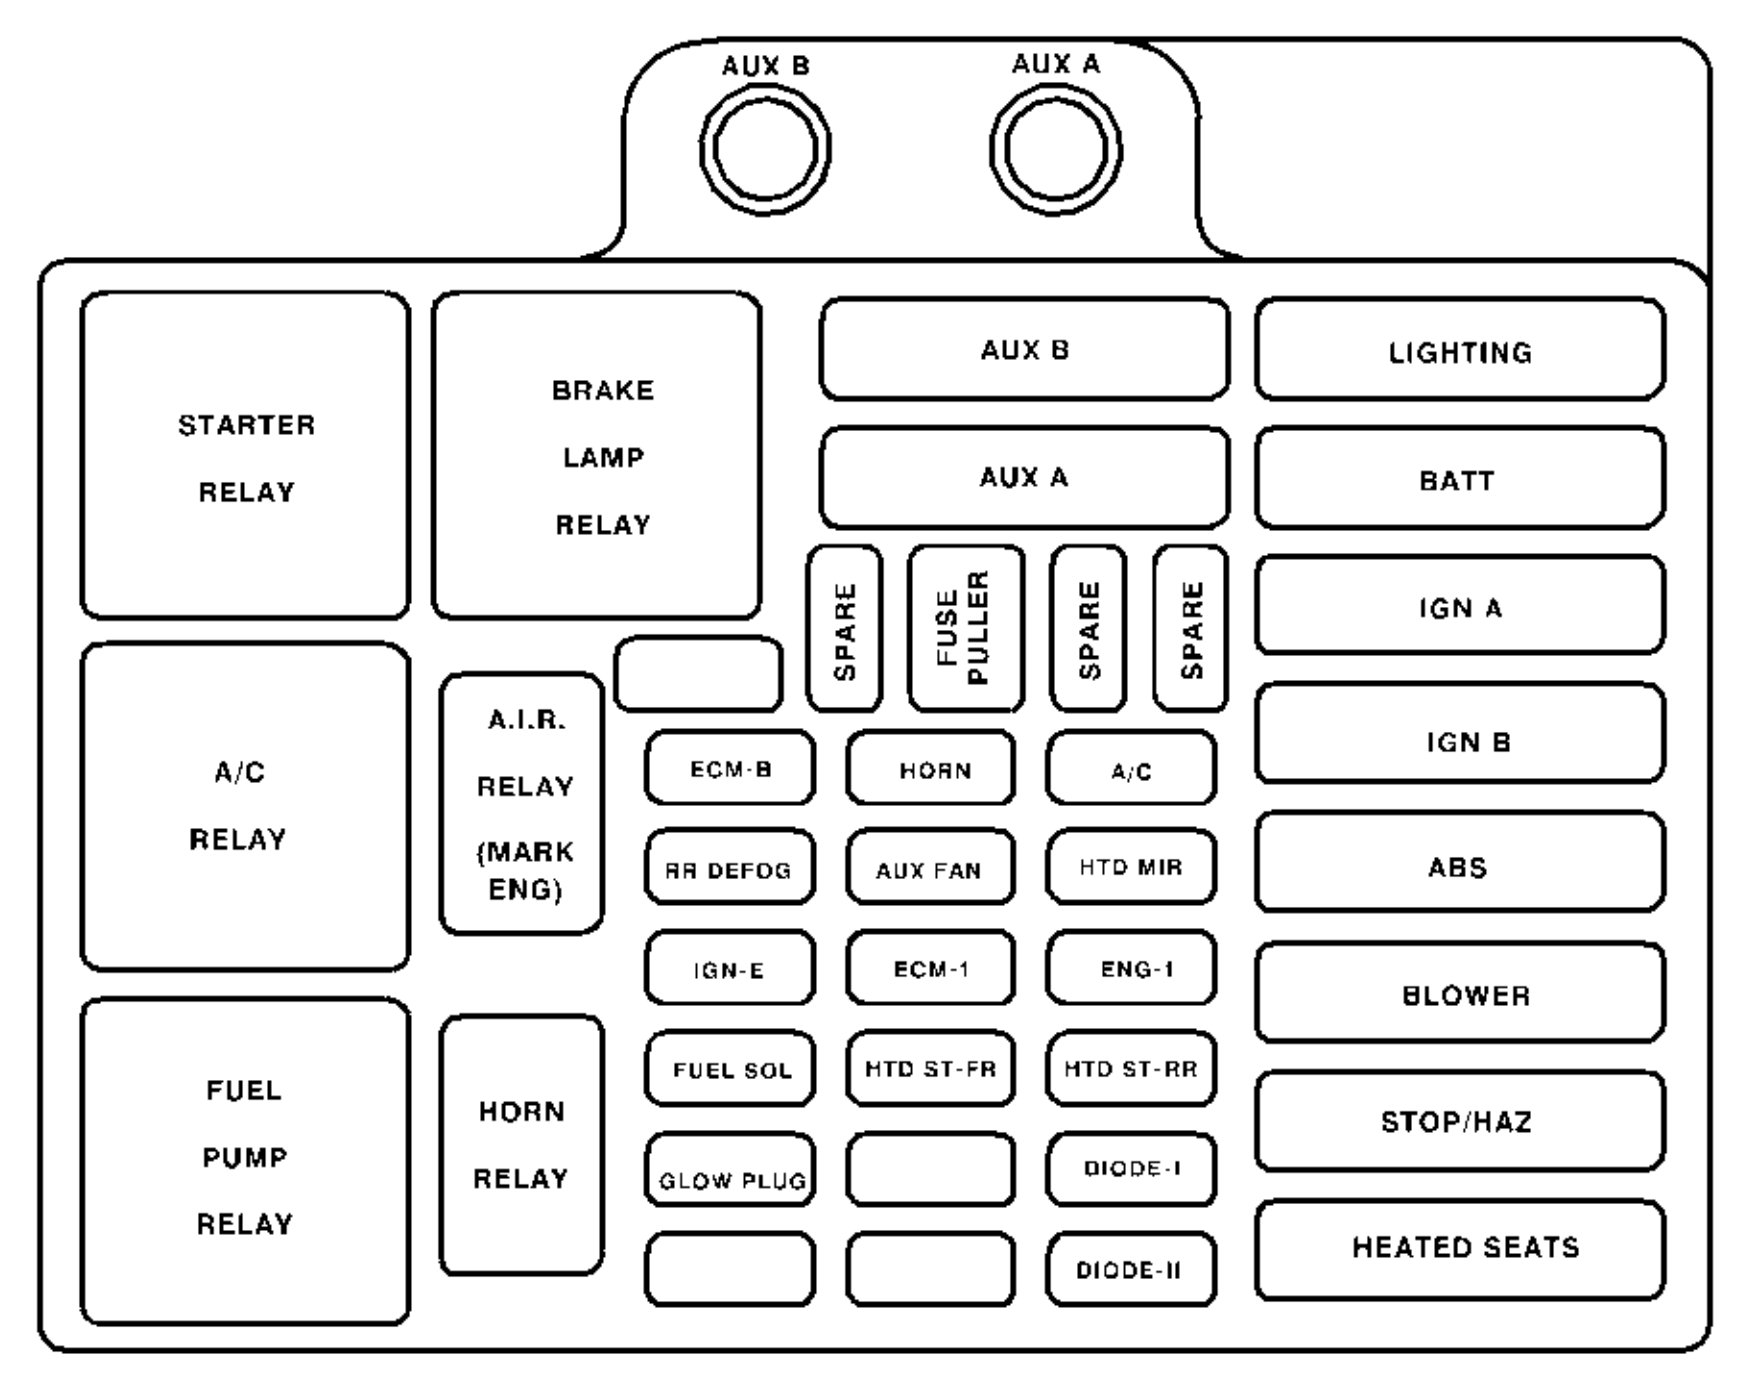 Toyota Tundra Second Generation Mk2 2010 Fuse Box Diagram besides Arduino Rfid Reader Rc522 Access Control System in addition 4ppch Ford Escape Xlt 2005 Ford Escape Gate Will moreover Chevrolet Hhr 2005 2011 Fuse Box Diagram also Wiring Harness For 2002 Chevy Trailblazer. on power door lock wiring diagram